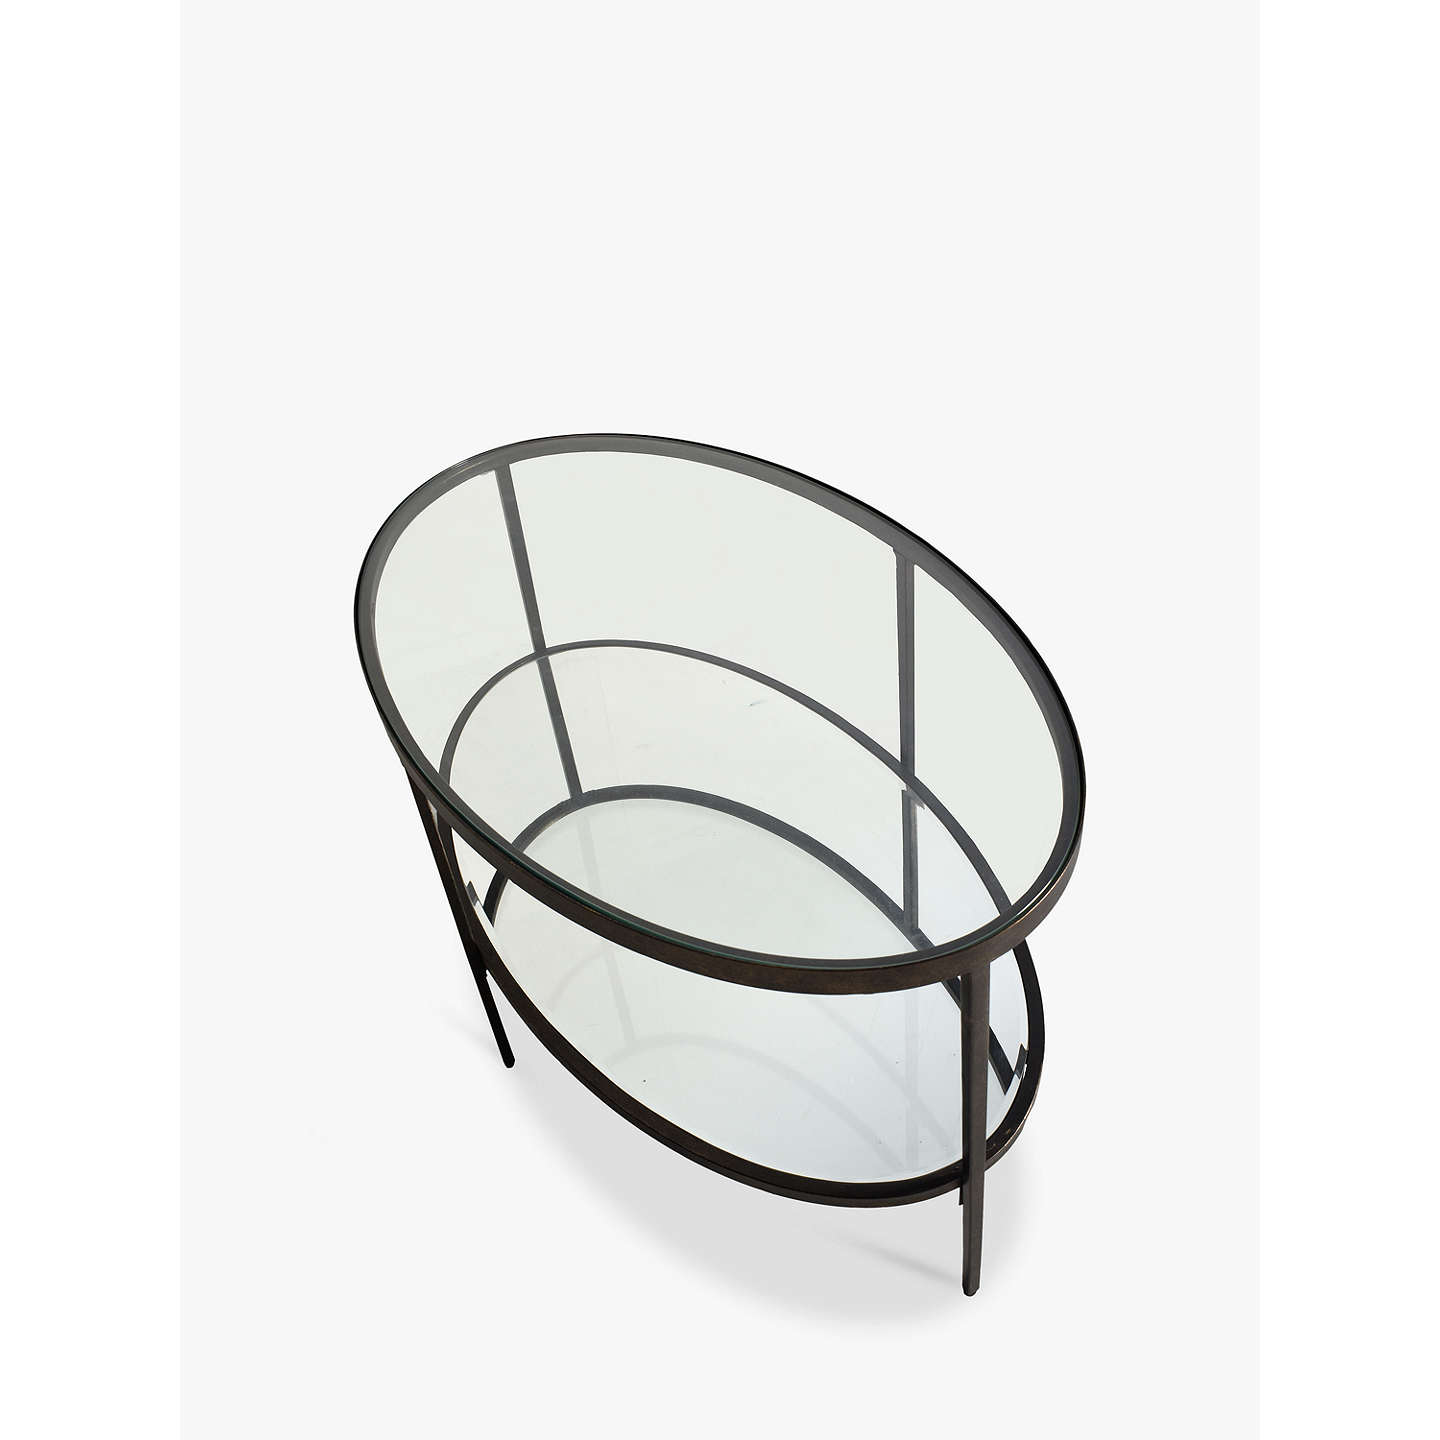 Hudson Living Glass Oval Coffee Table At John Lewis